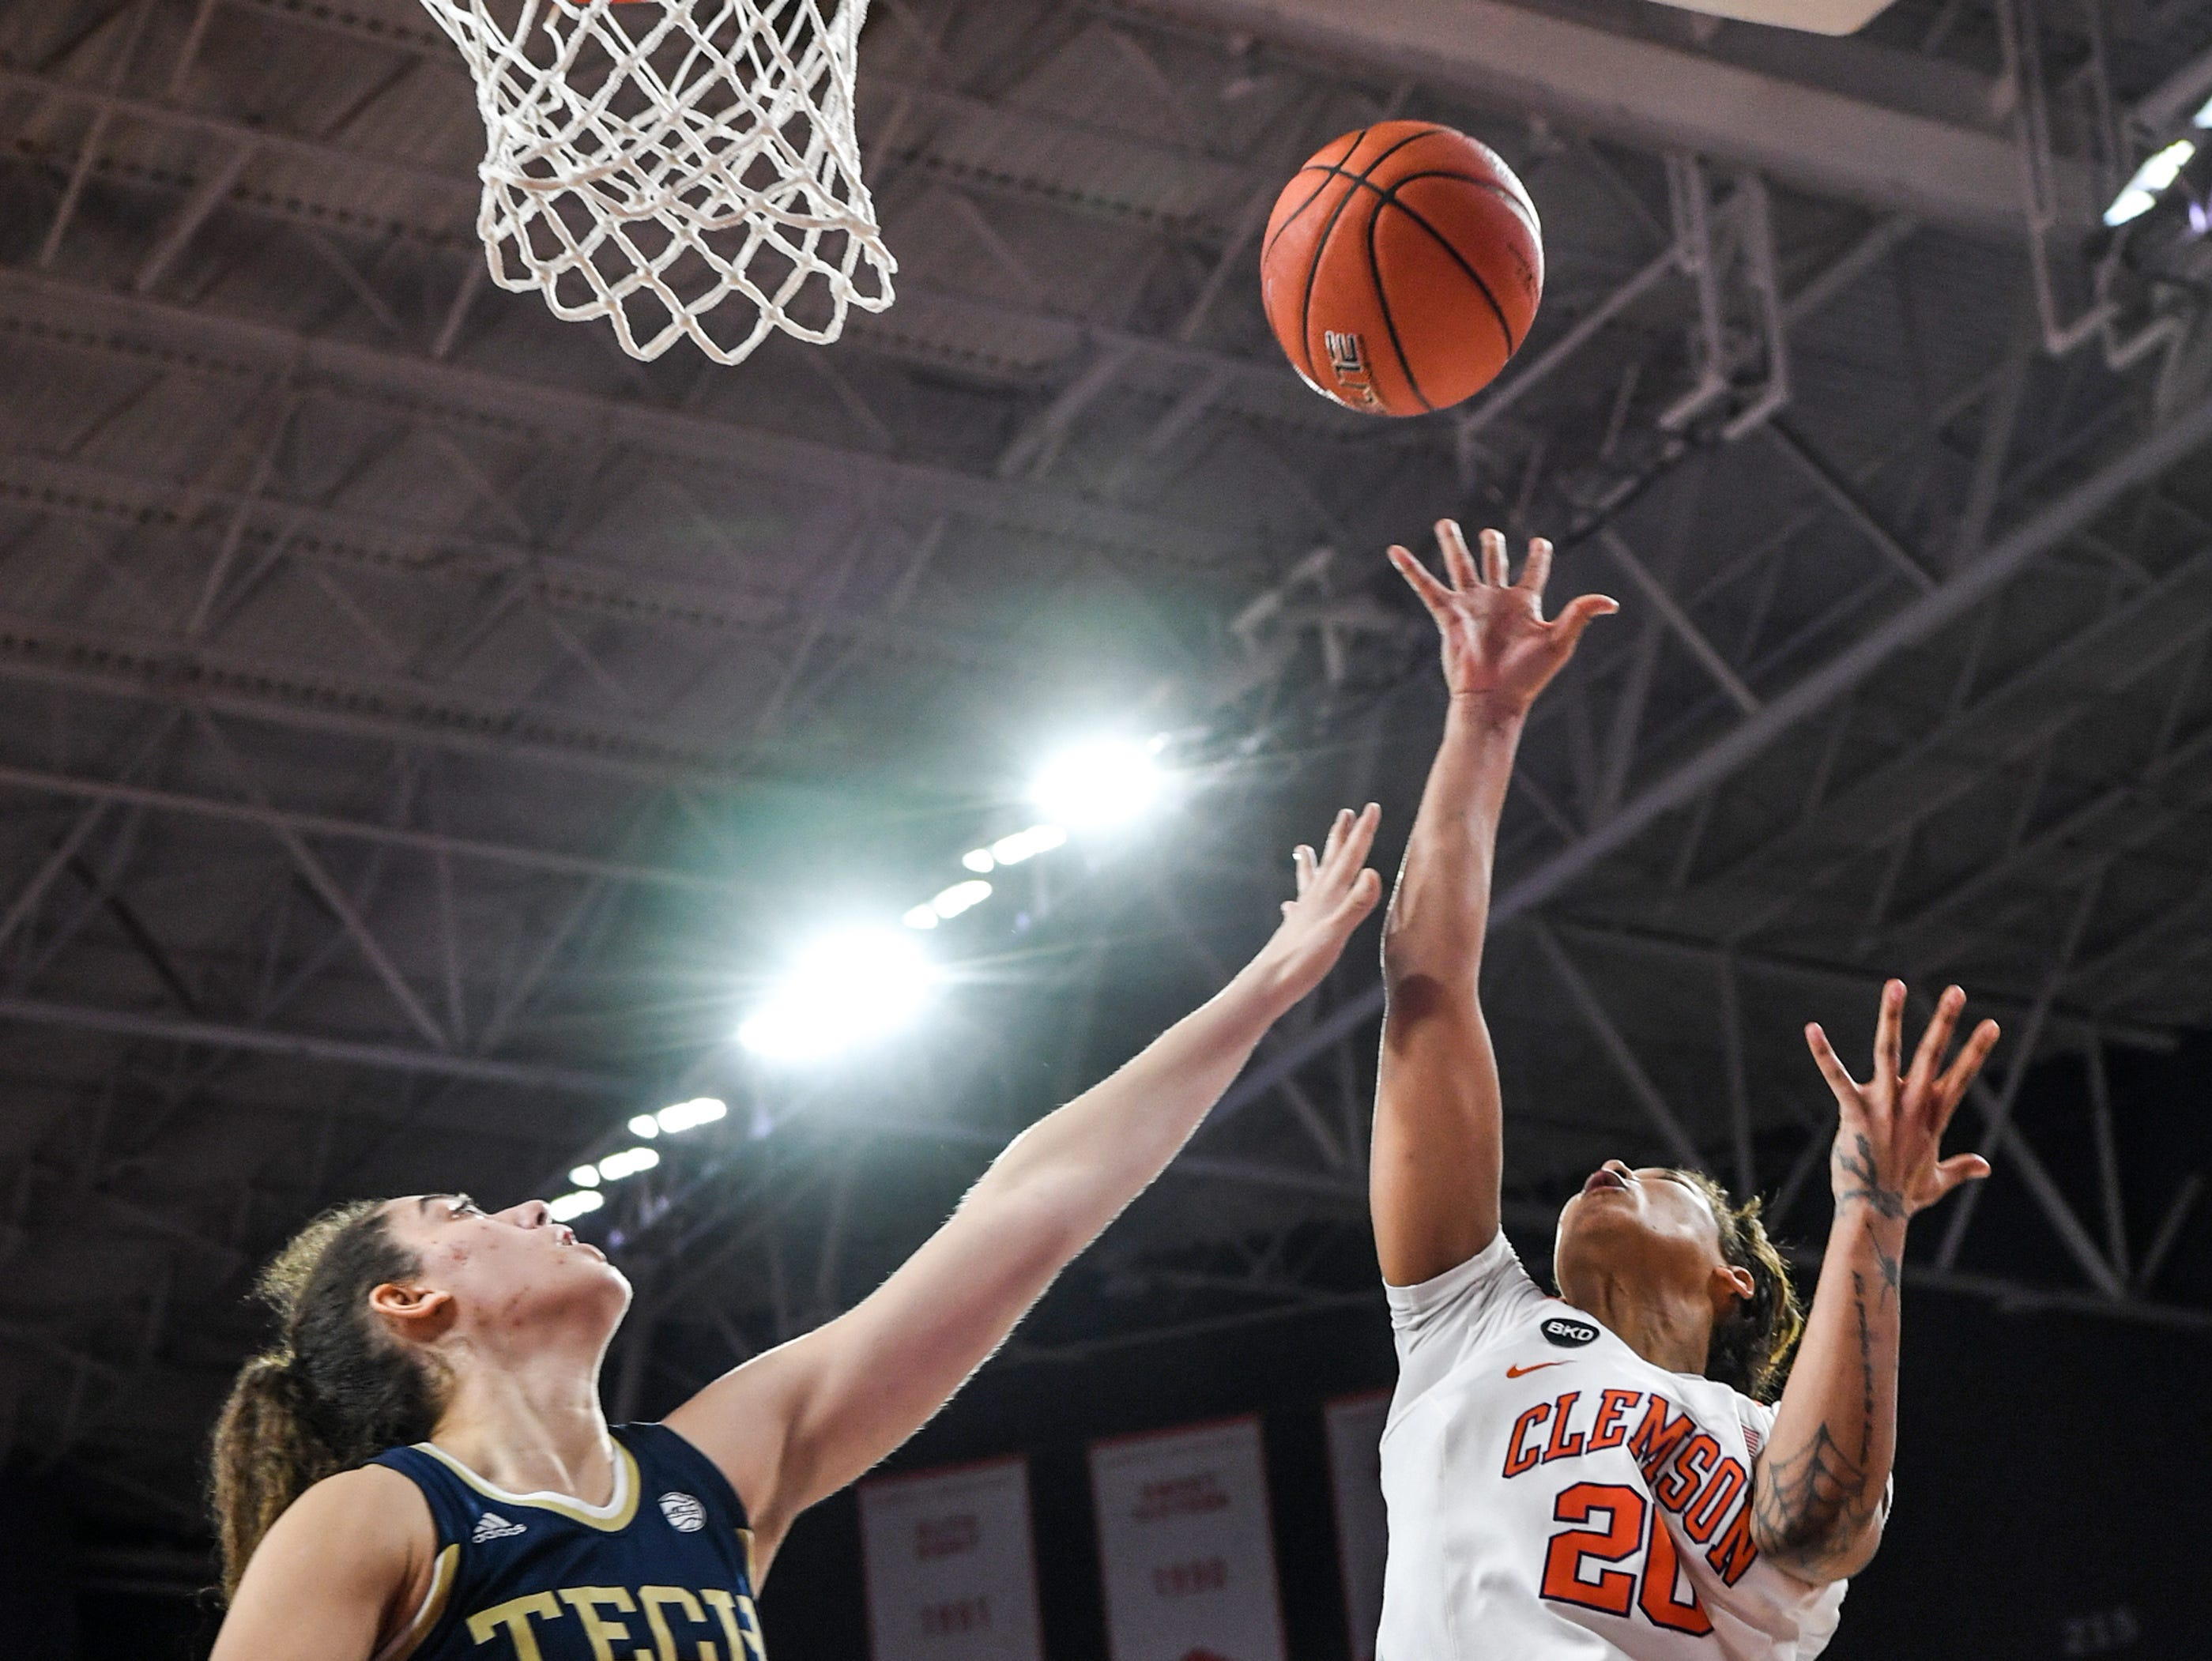 Clemson guard Simone Westbrook(20) shoots near Georgia Tech forward Lorela Cubaj(13) during the fourth quarter at Littlejohn Coliseum in Clemson Thursday, January 17, 2019.